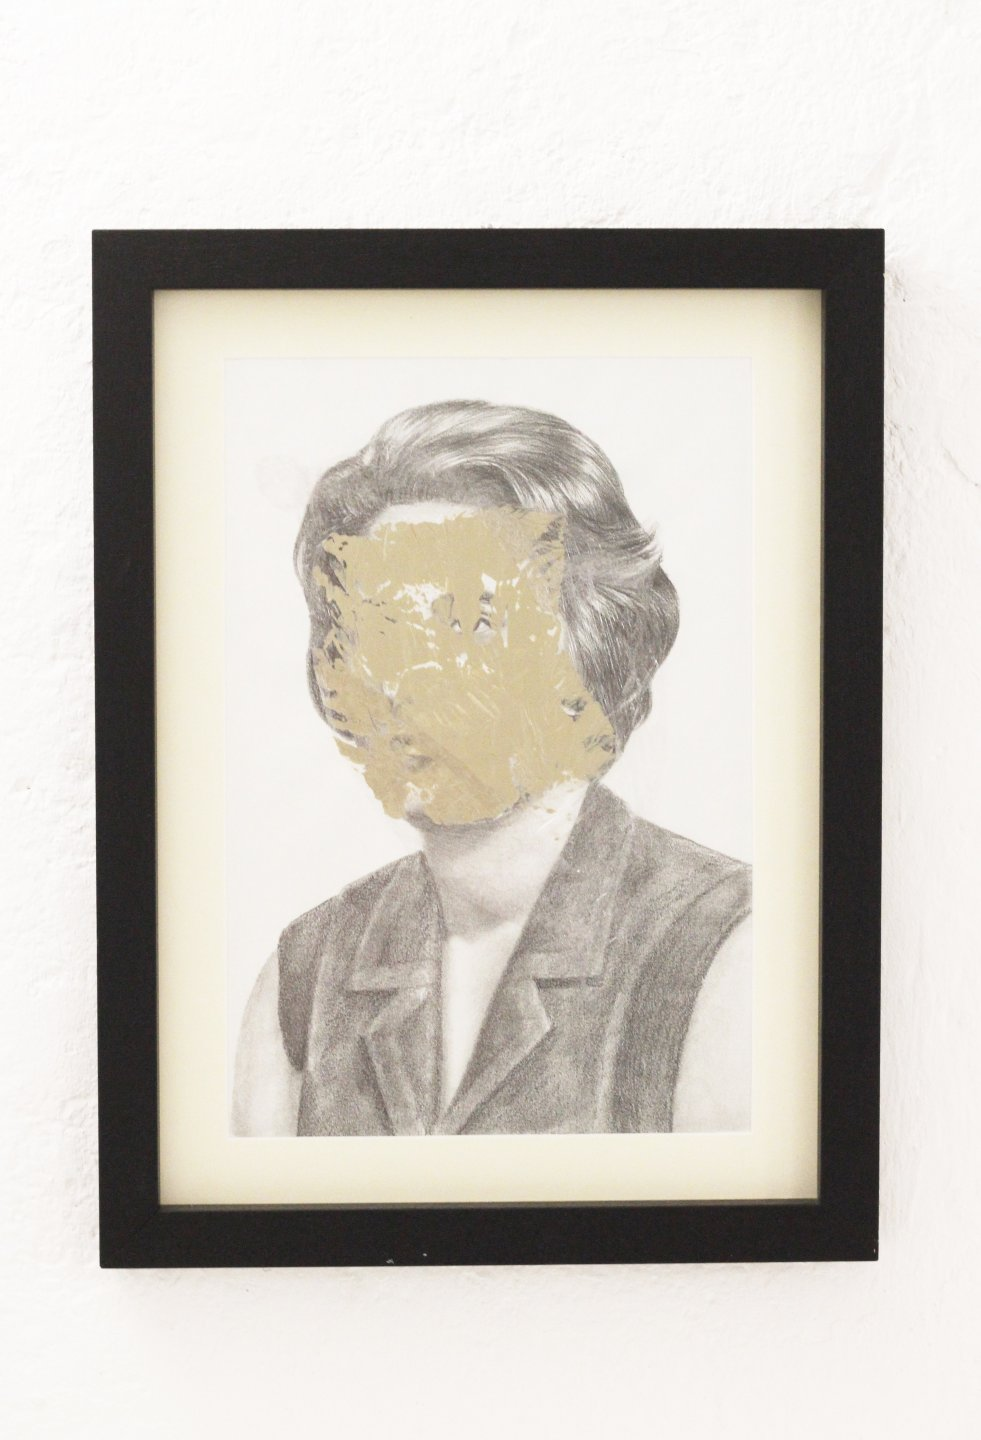 Galerie Benjamin Eck München CATARINA MANTERO 'Mask II', graphite, acrylic and cellophane on paper, 42cm x 30cm, 2015